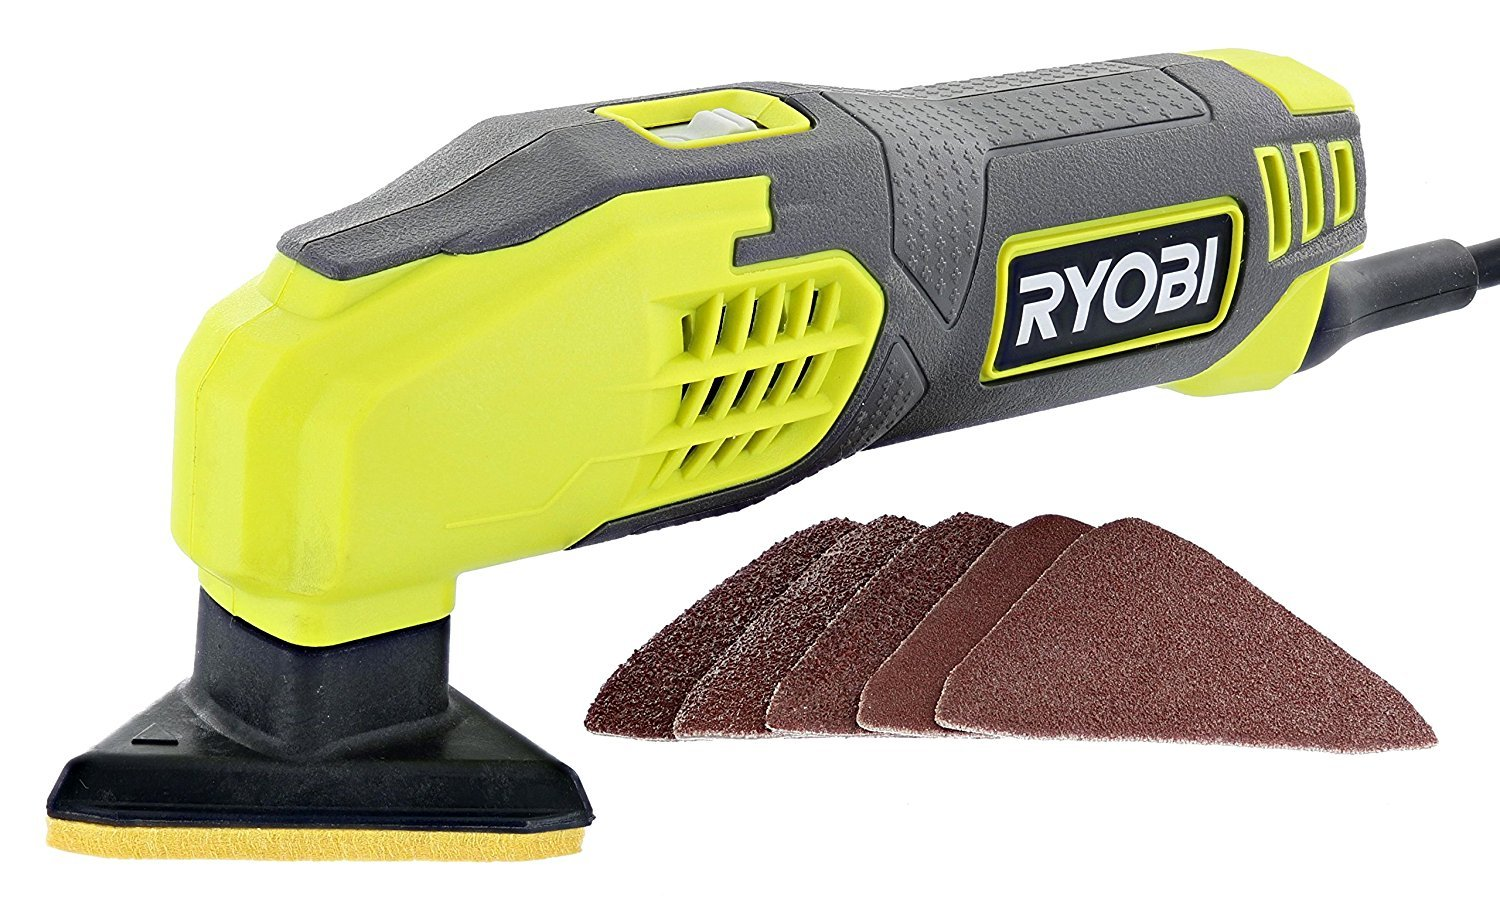 Ryobi DS1200 .4 Amp 13,000 OBM Corded 2-7 8 Detail Sander w Triangular Head and 5 Sanding Pads